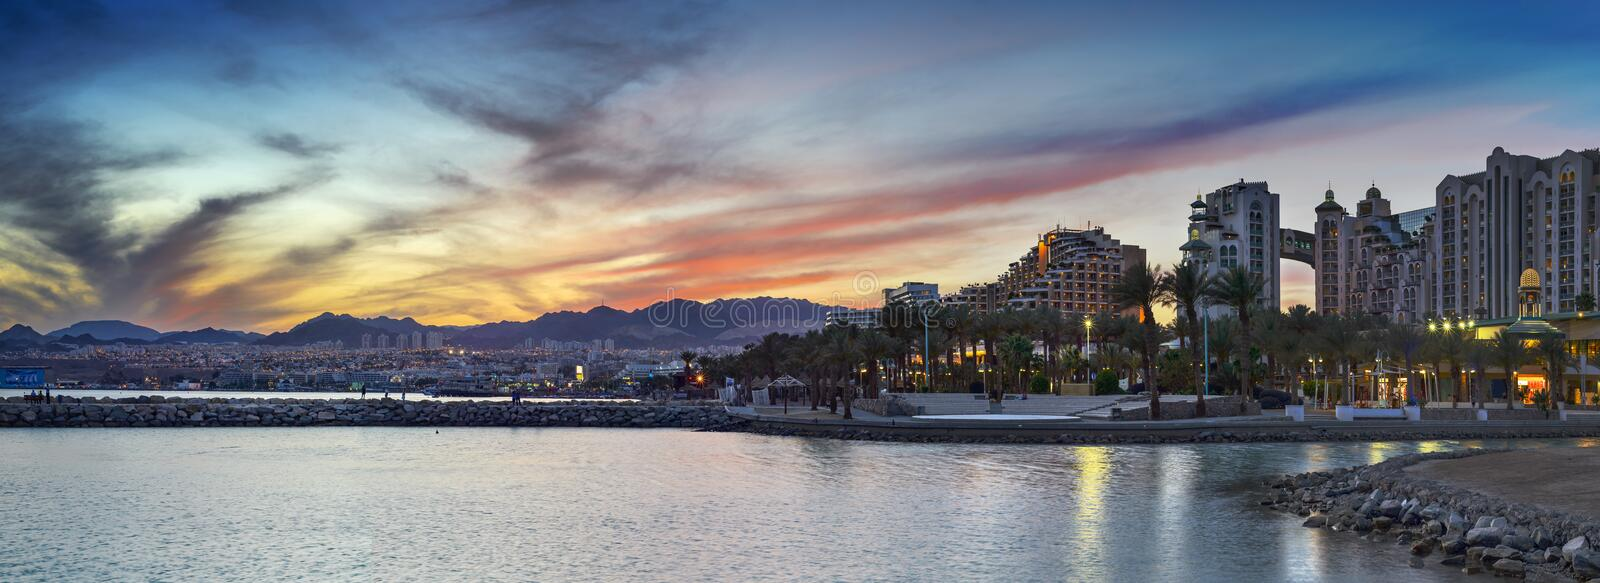 Panoramic view on the central beach of Eilat, Israel. Eilat is a famous resort and recreation city in Israel royalty free stock photography